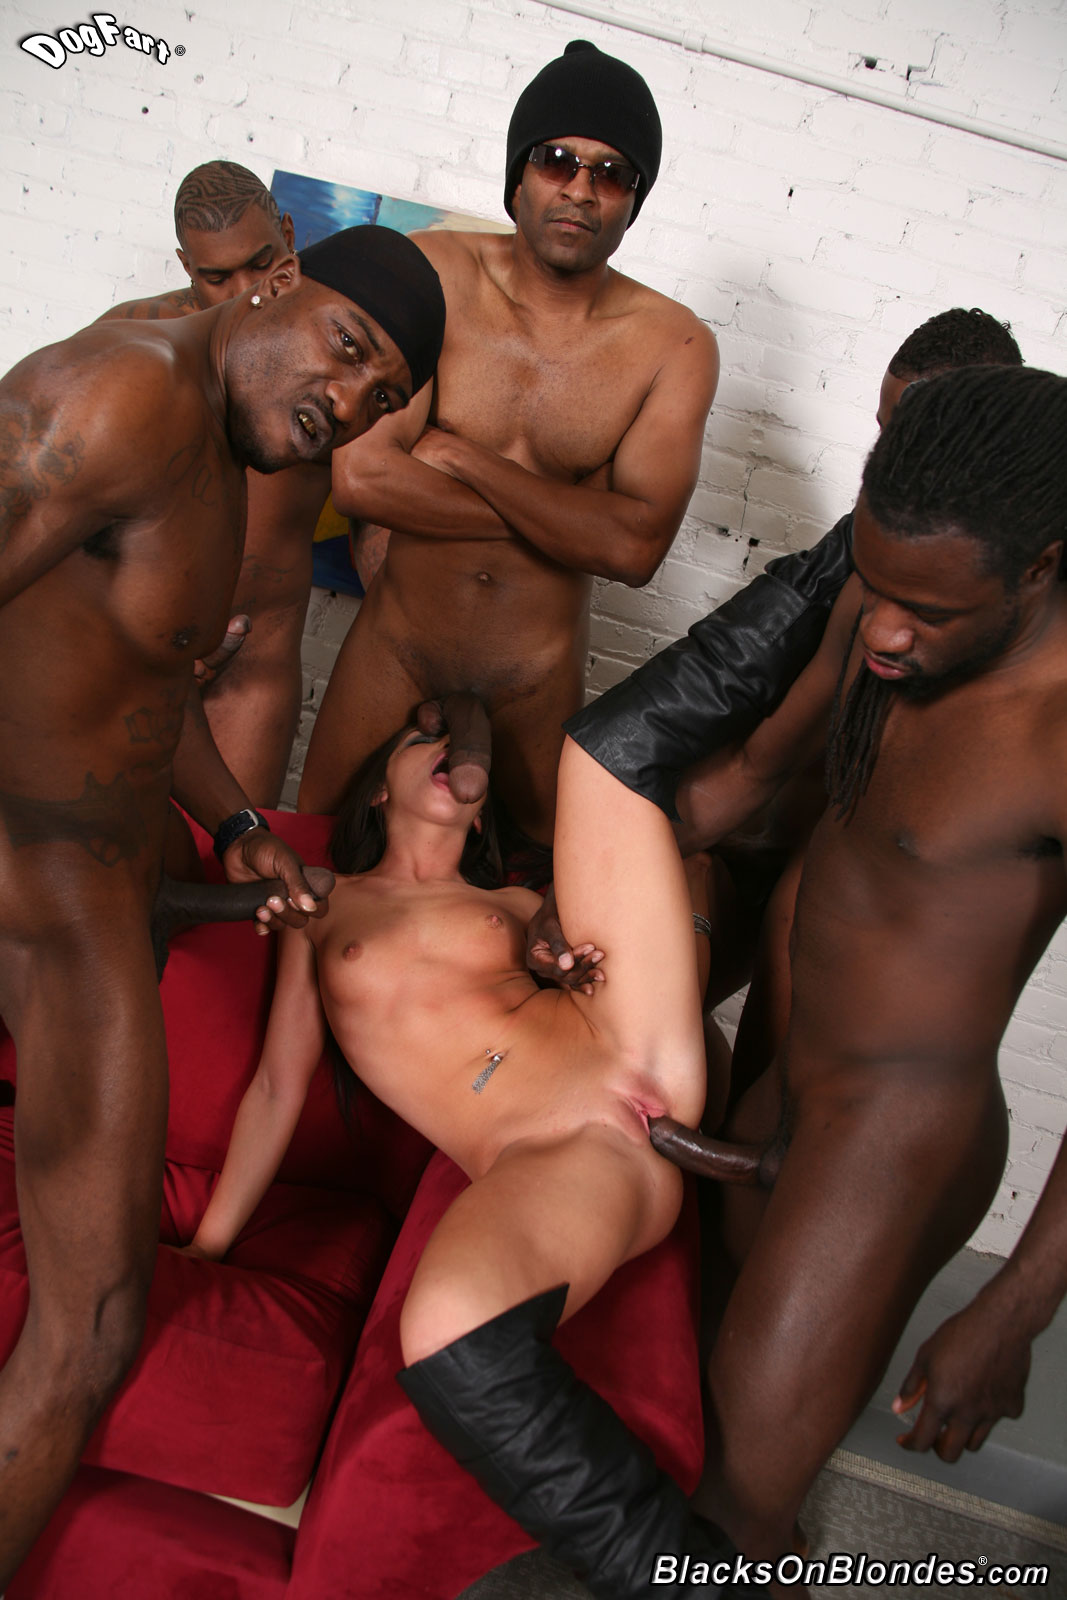 Brilliant Black men gangbang blonde milf opinion the